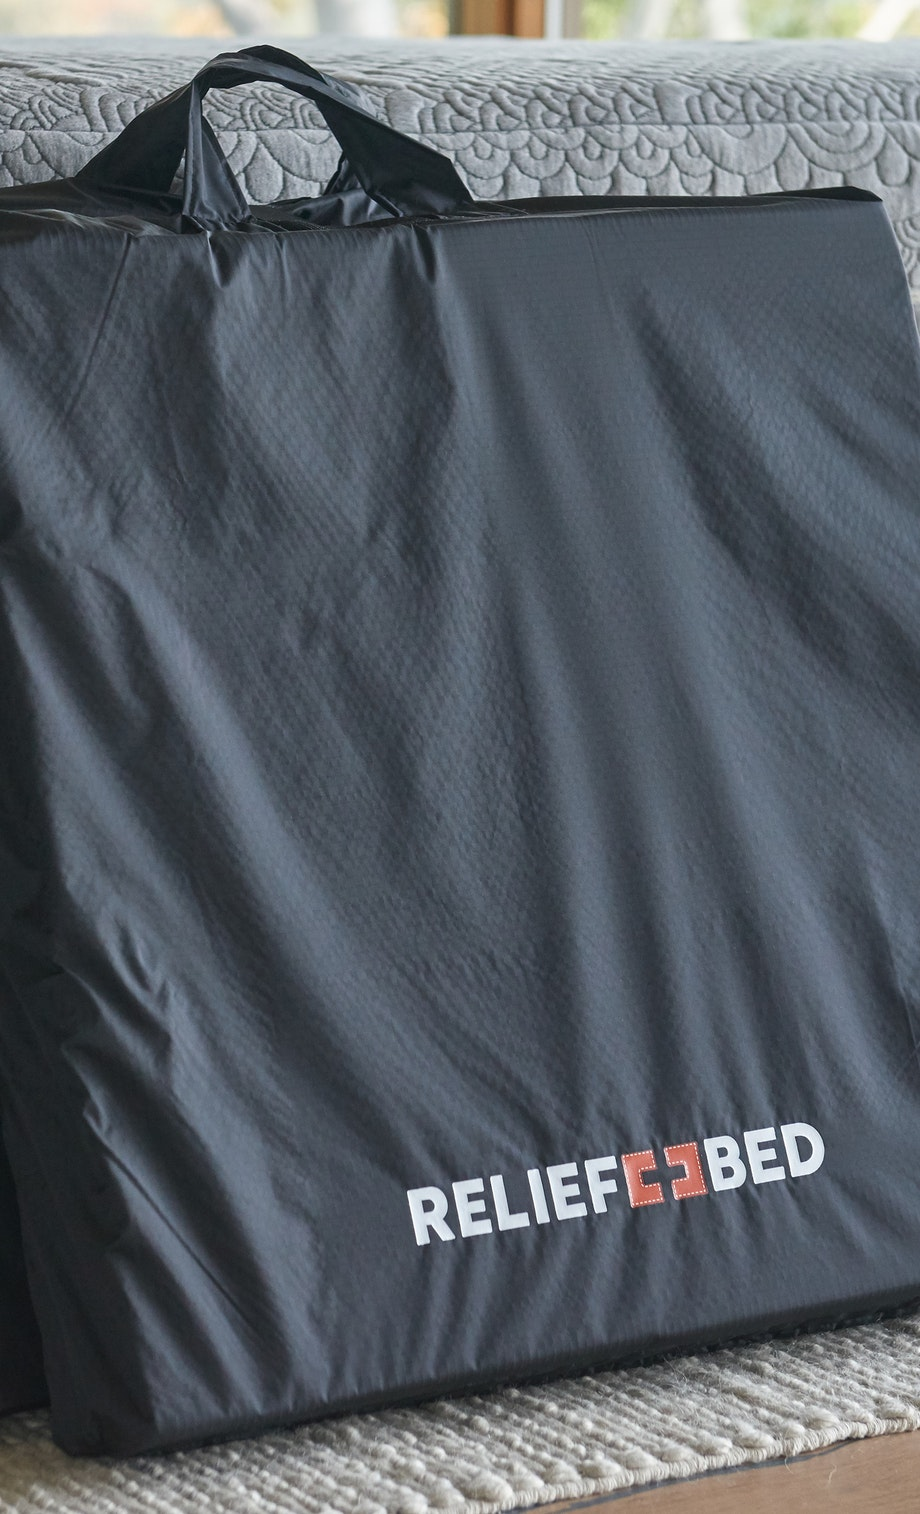 Relief Bed